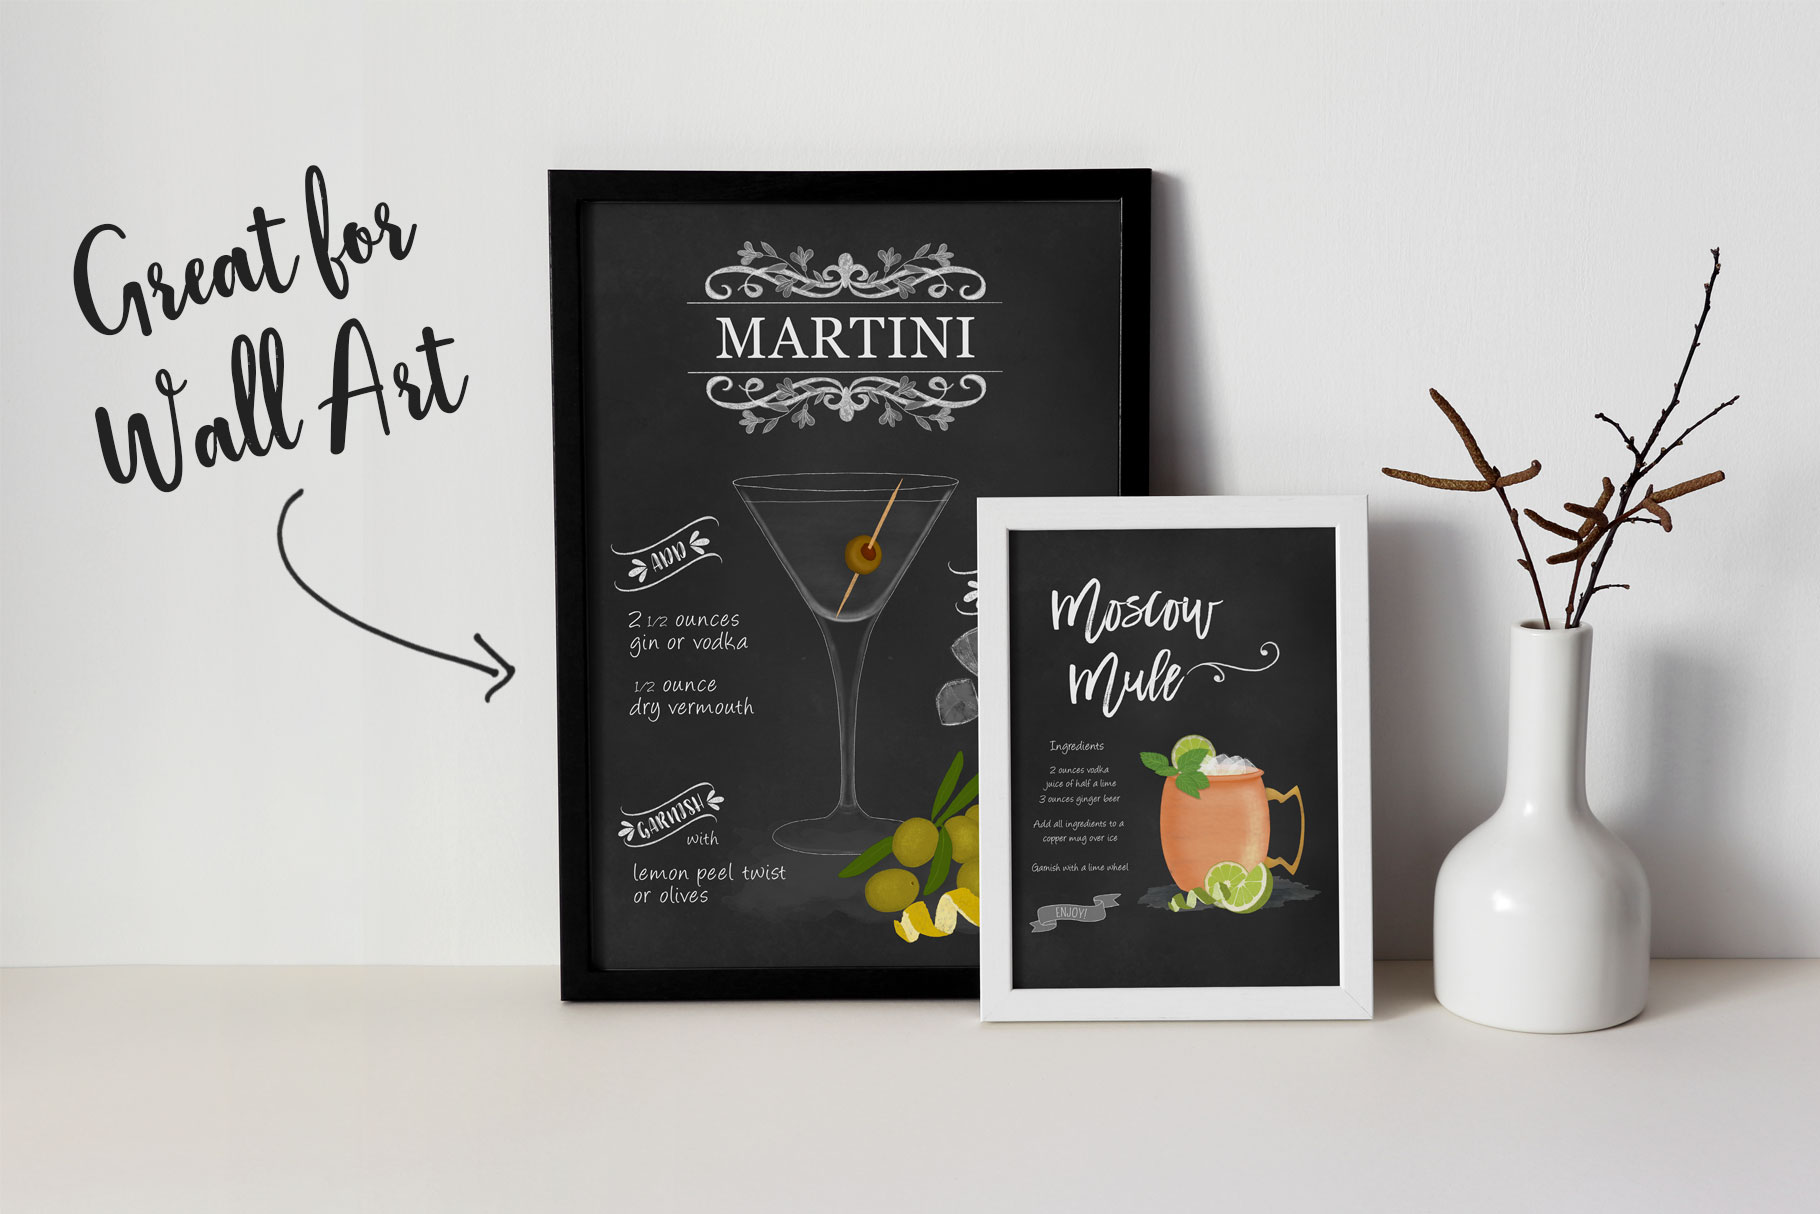 Cocktail Illustrations & Posters